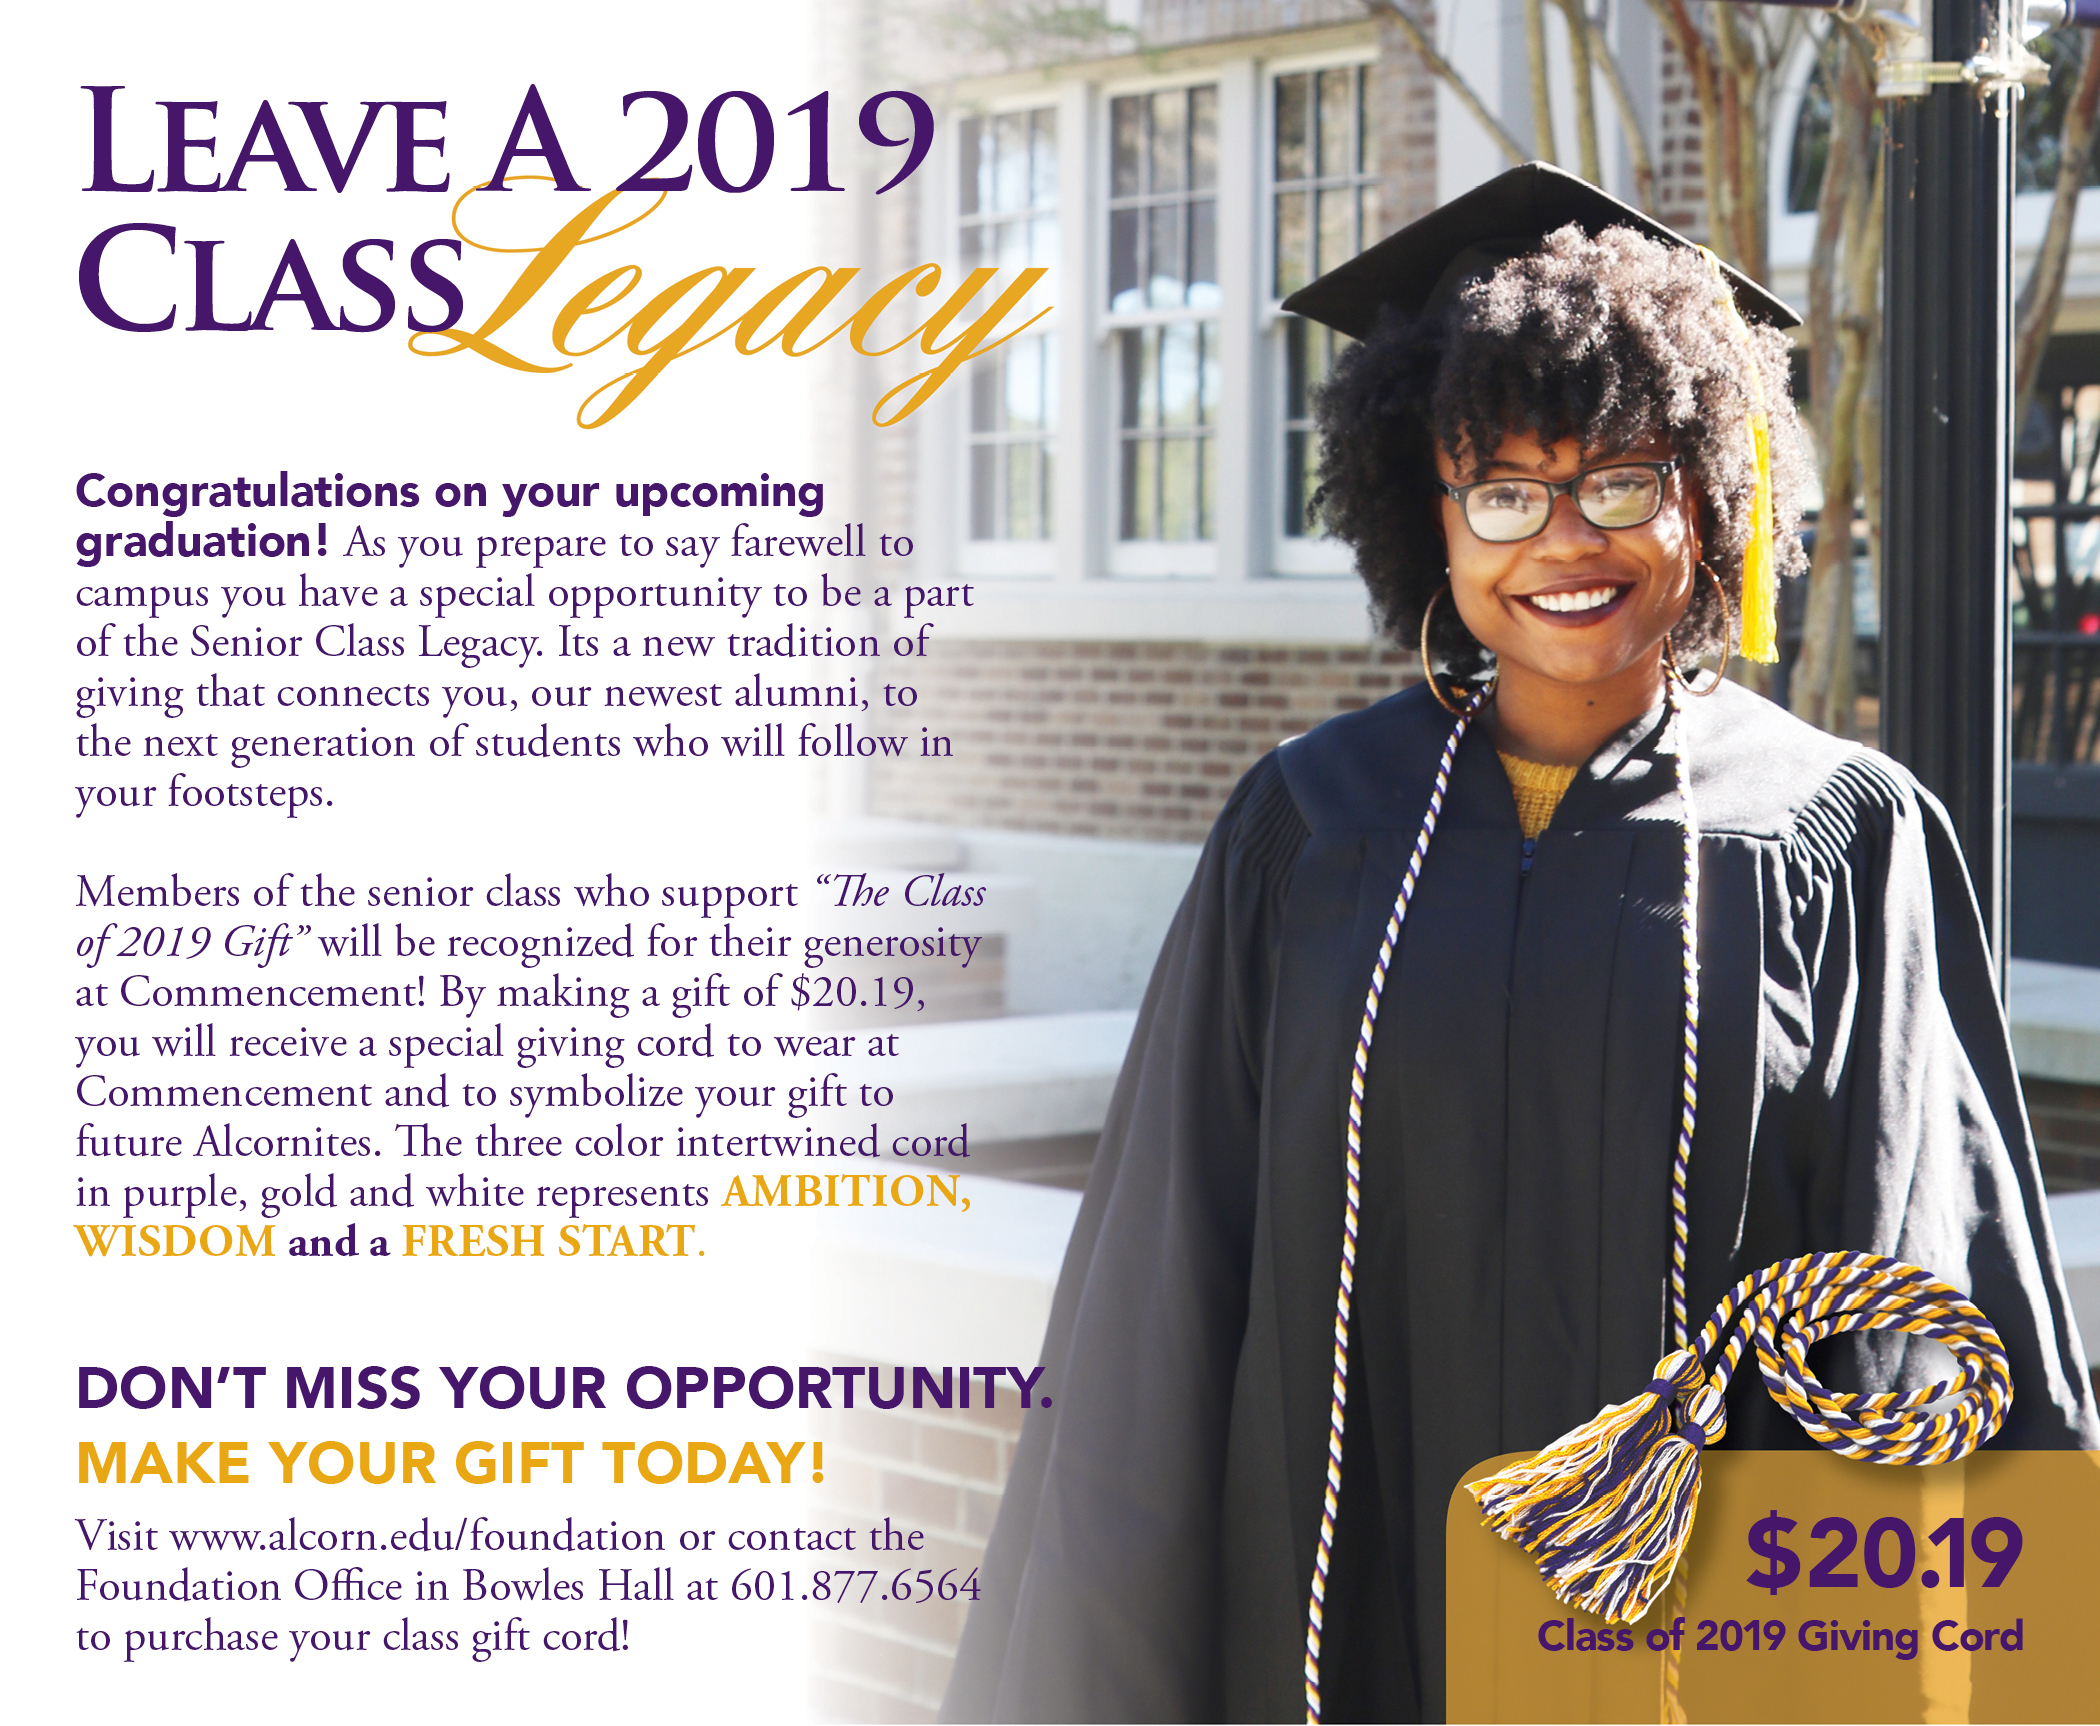 2019 Giving Cord Commencement Campaign Flyer